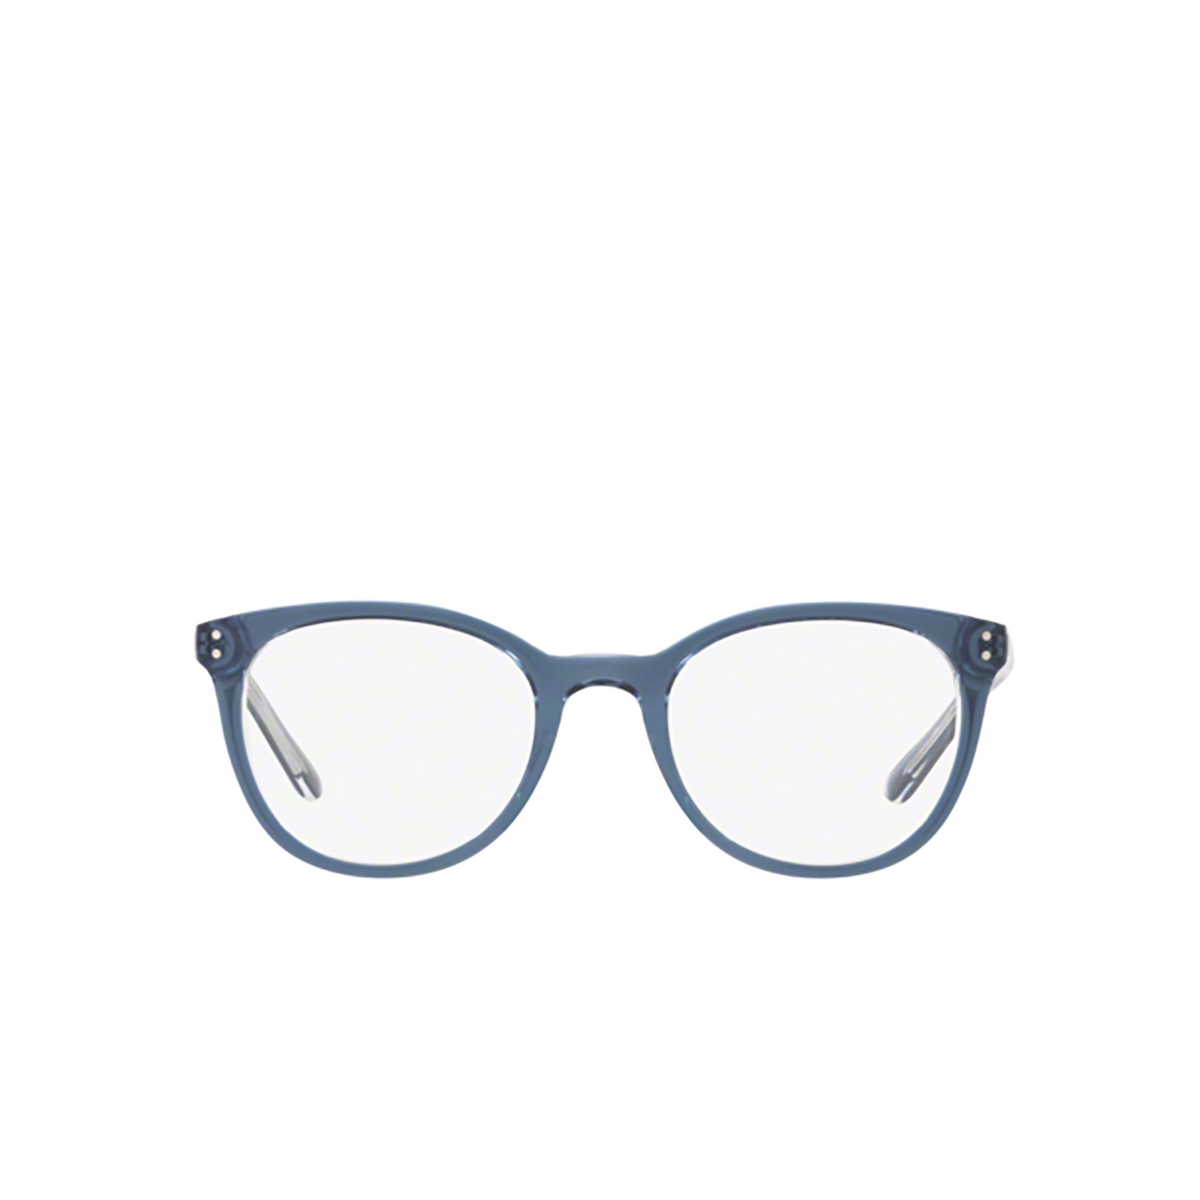 Polo Ralph Lauren® Round Eyeglasses: PP8529 color Shiny Navy Crystal 1666 - front view.